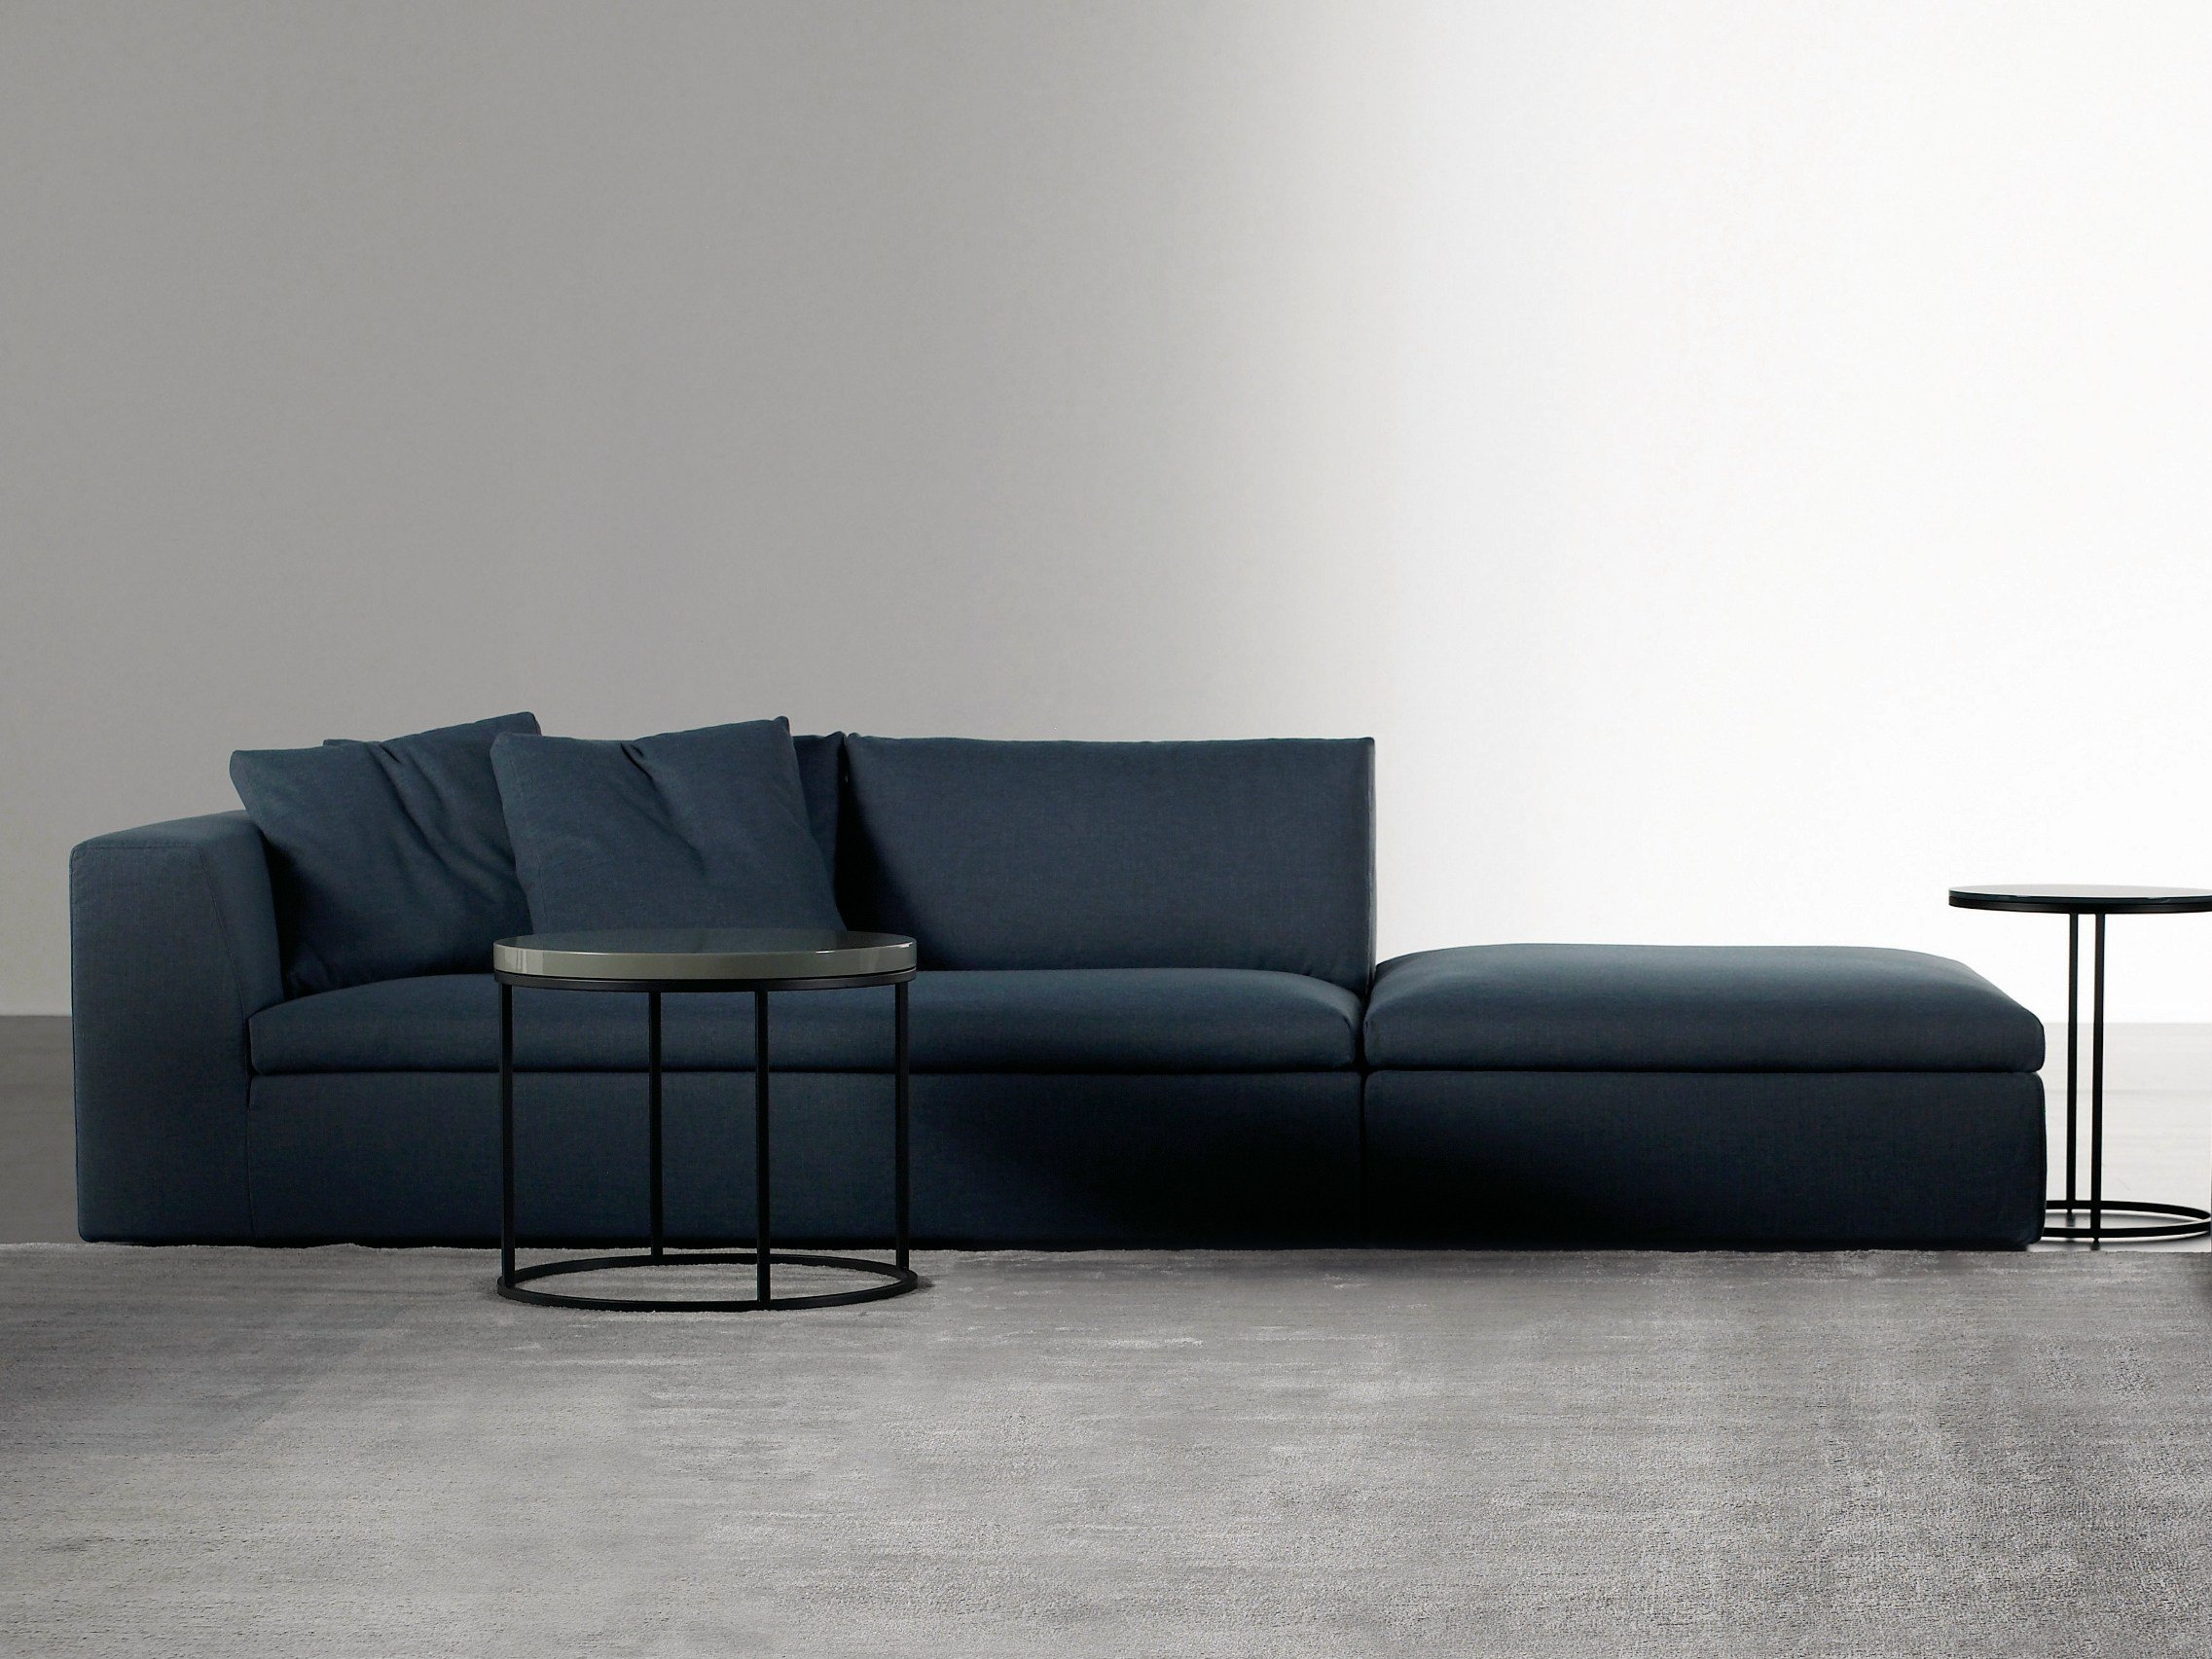 LOUIS 2 0 By Meridiani